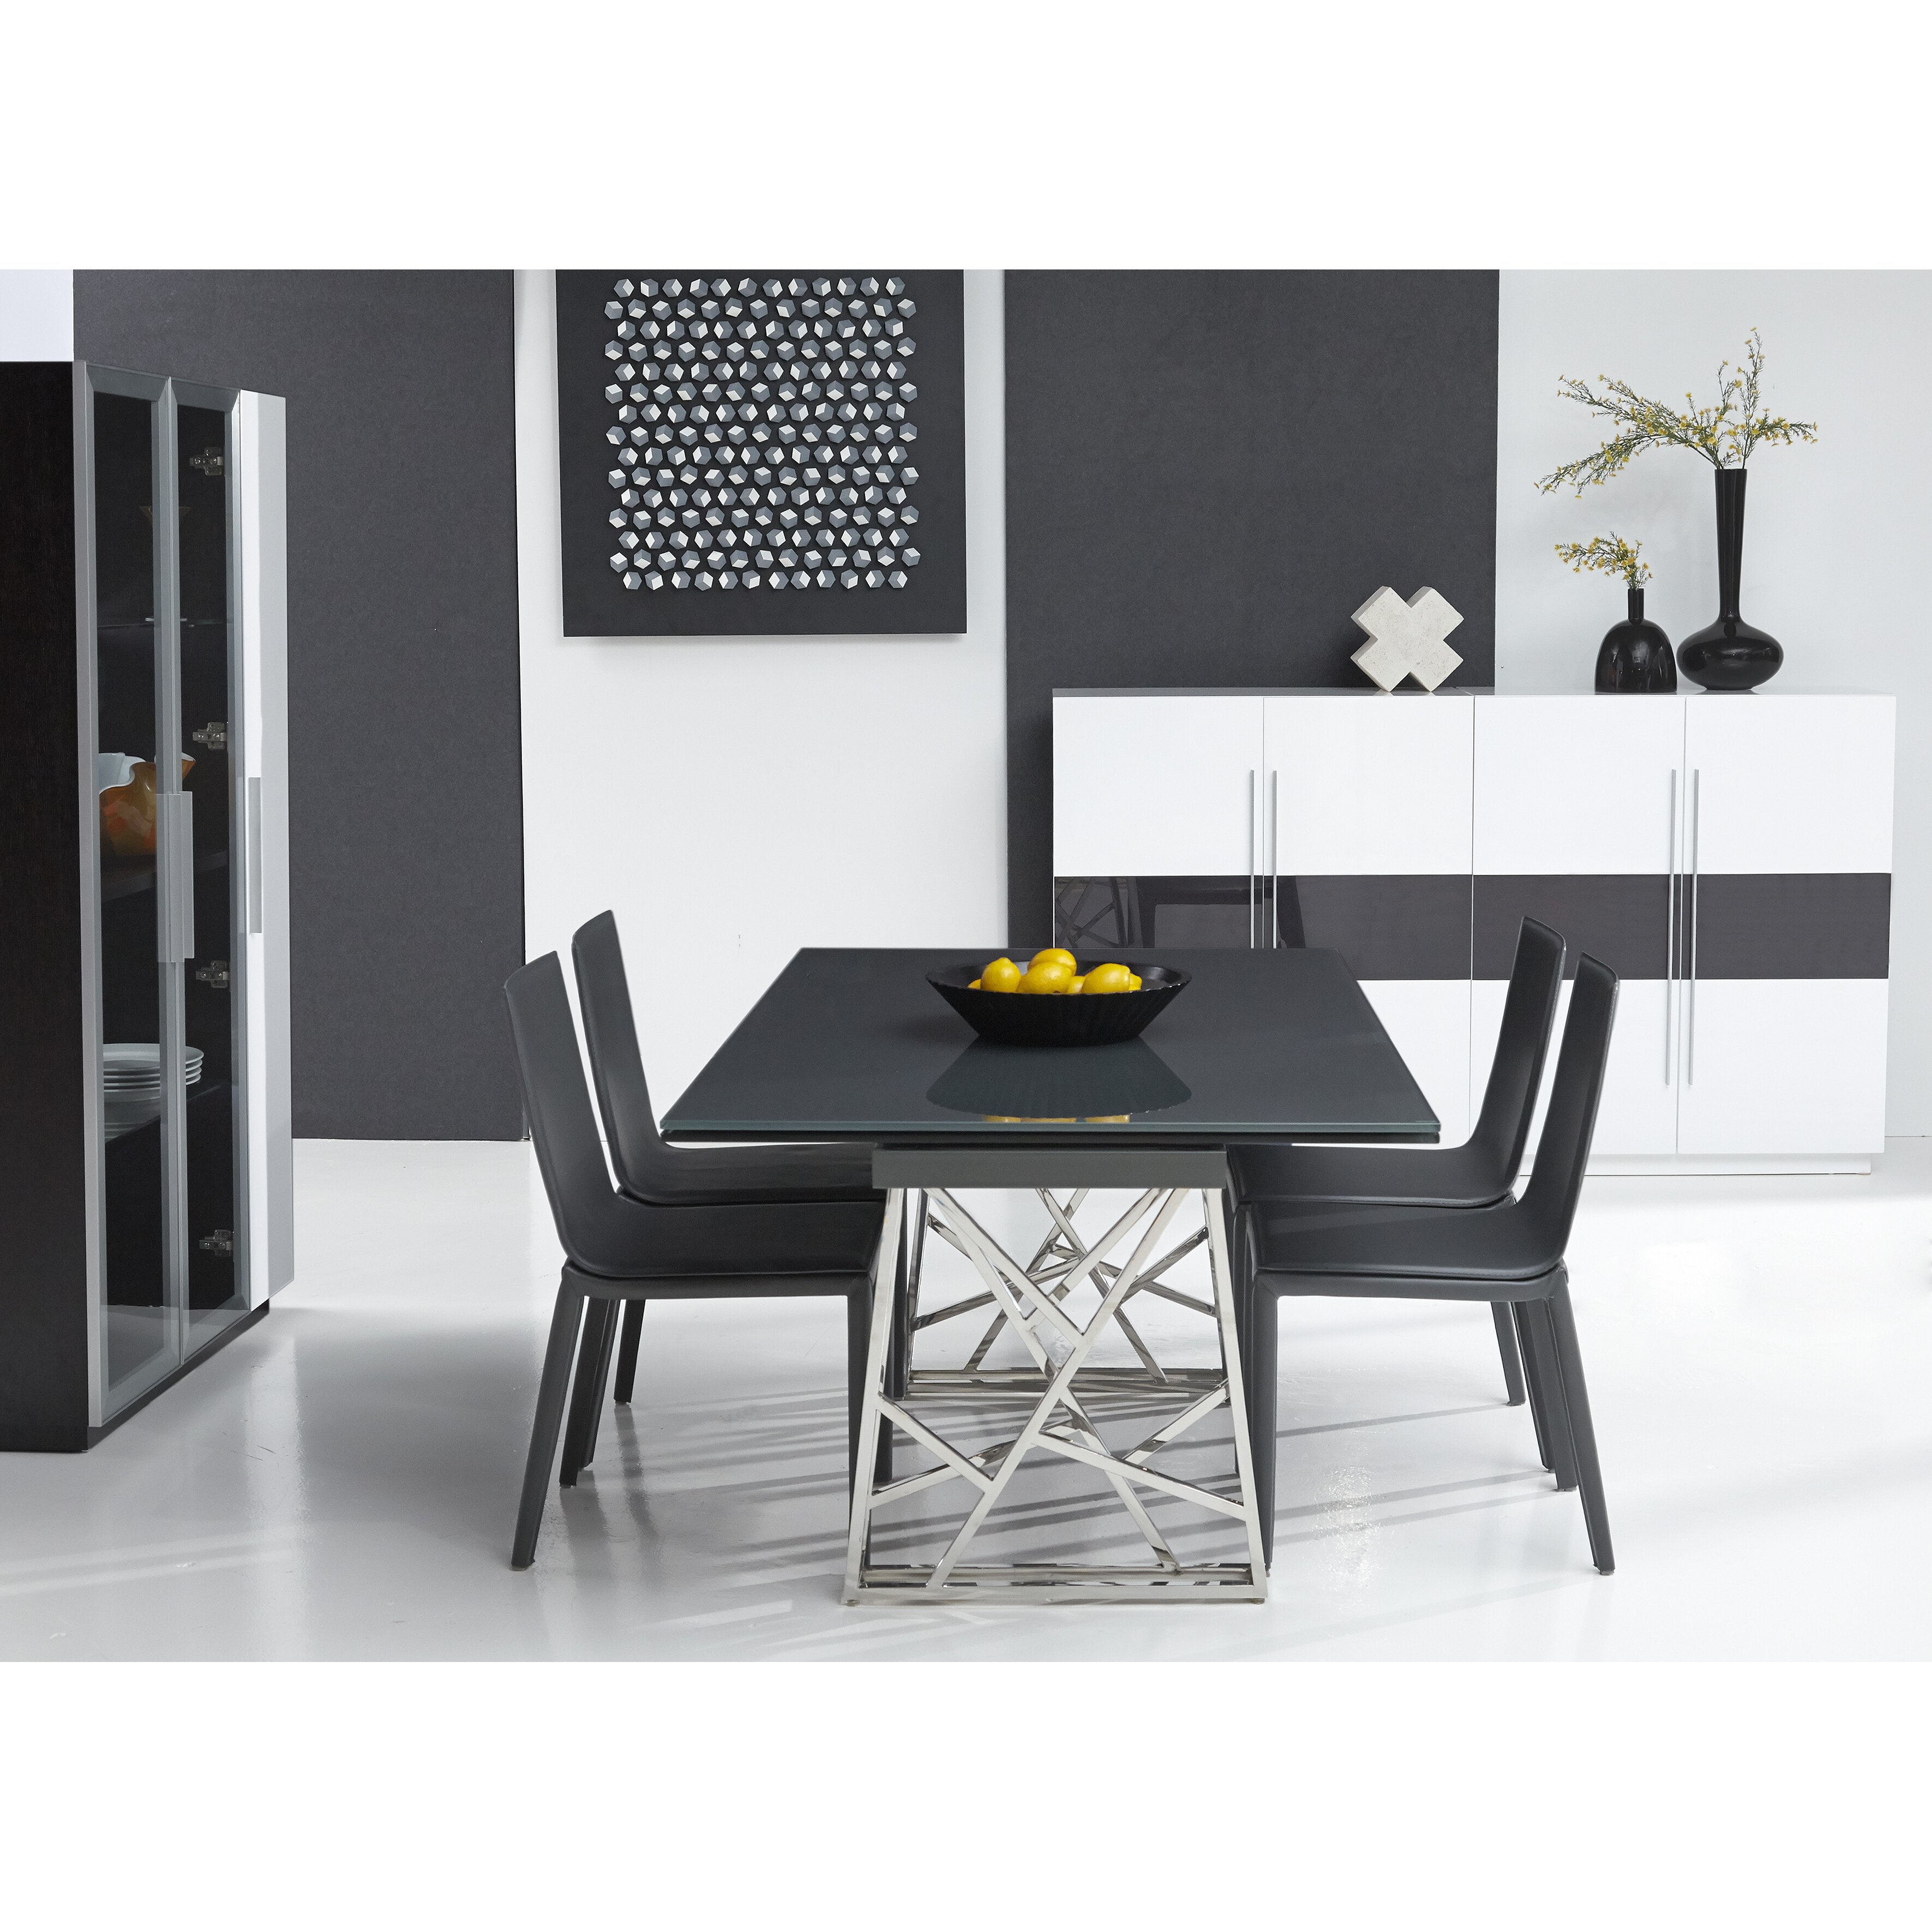 Bellini Modern Living Borg Expandable Dining Table  :  from www.wayfair.com size 3542 x 3542 jpeg 1587kB